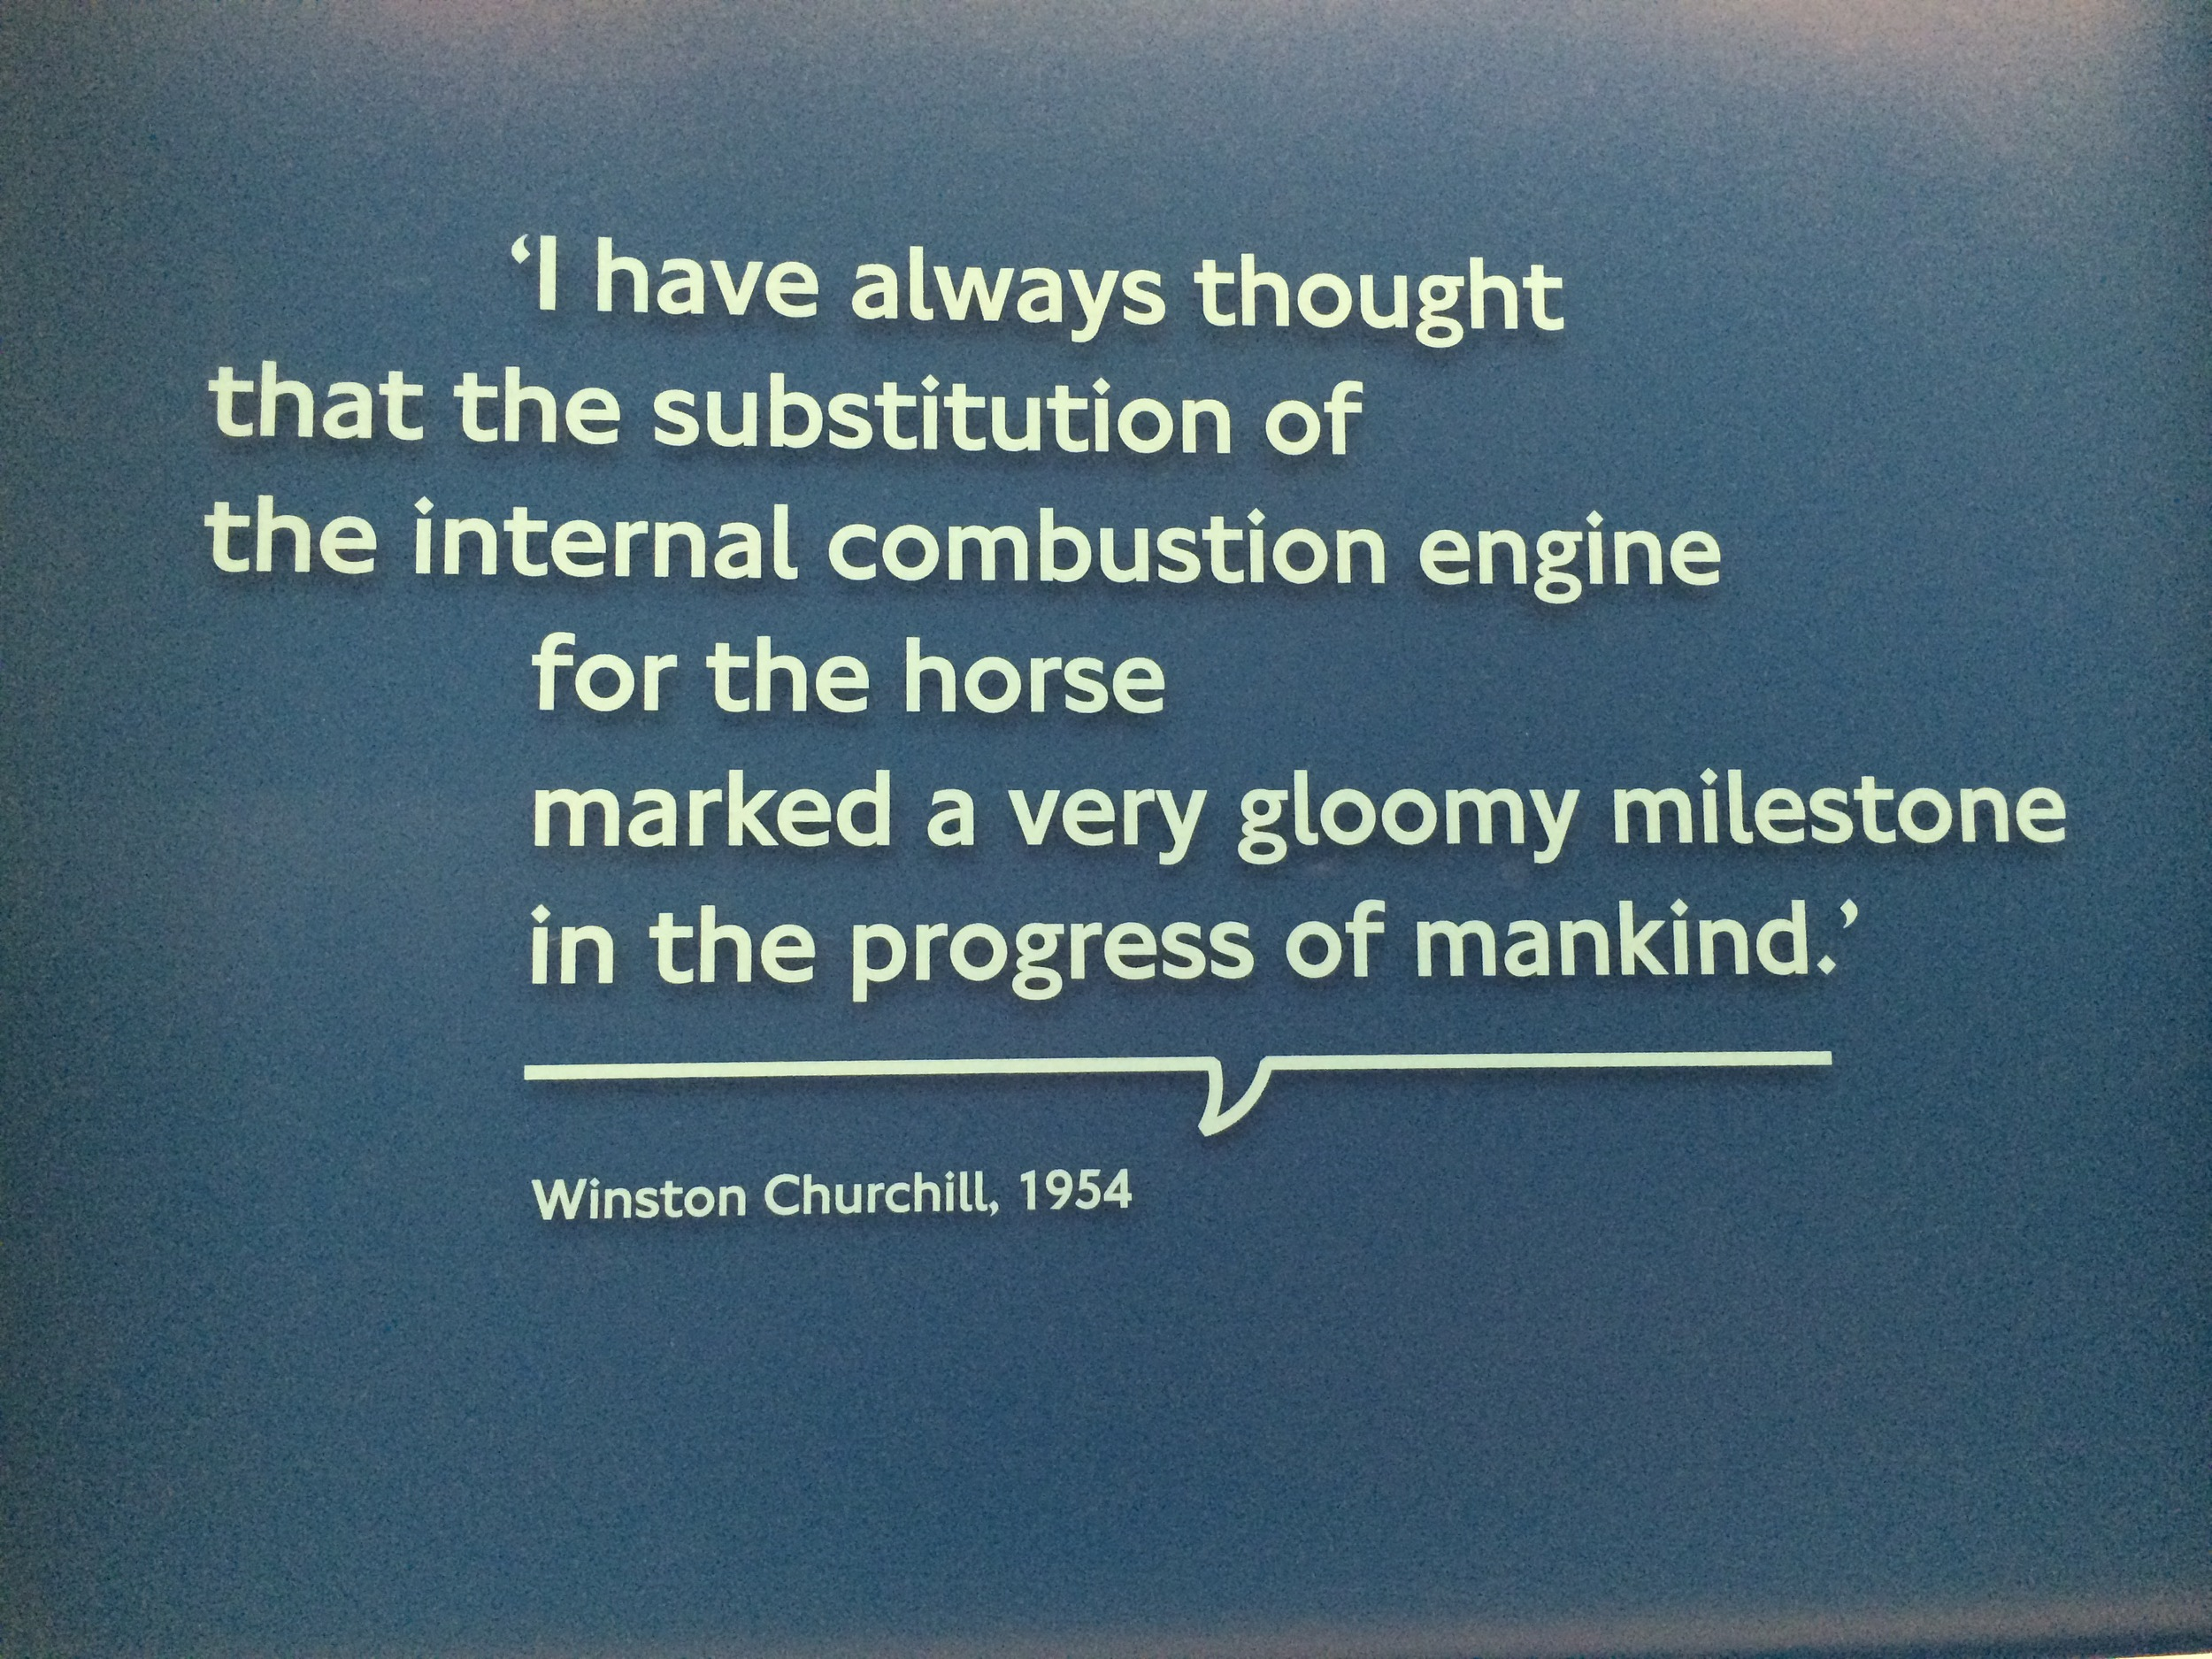 From the London Transport Museum